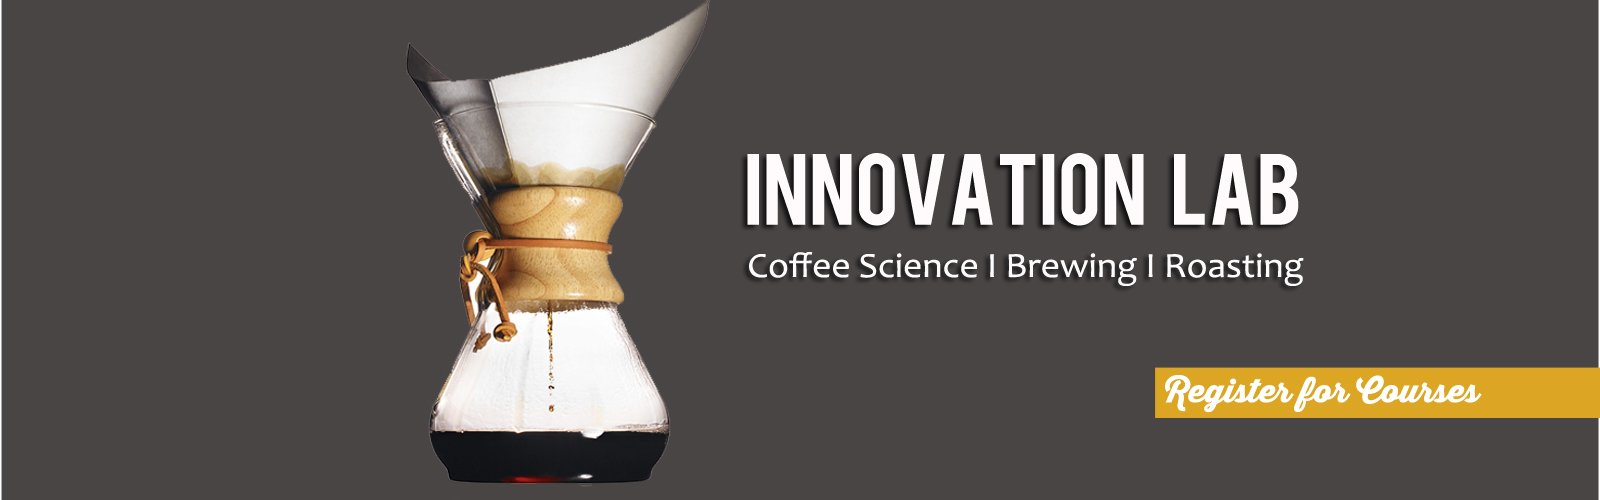 Innovation Lab_Chemex